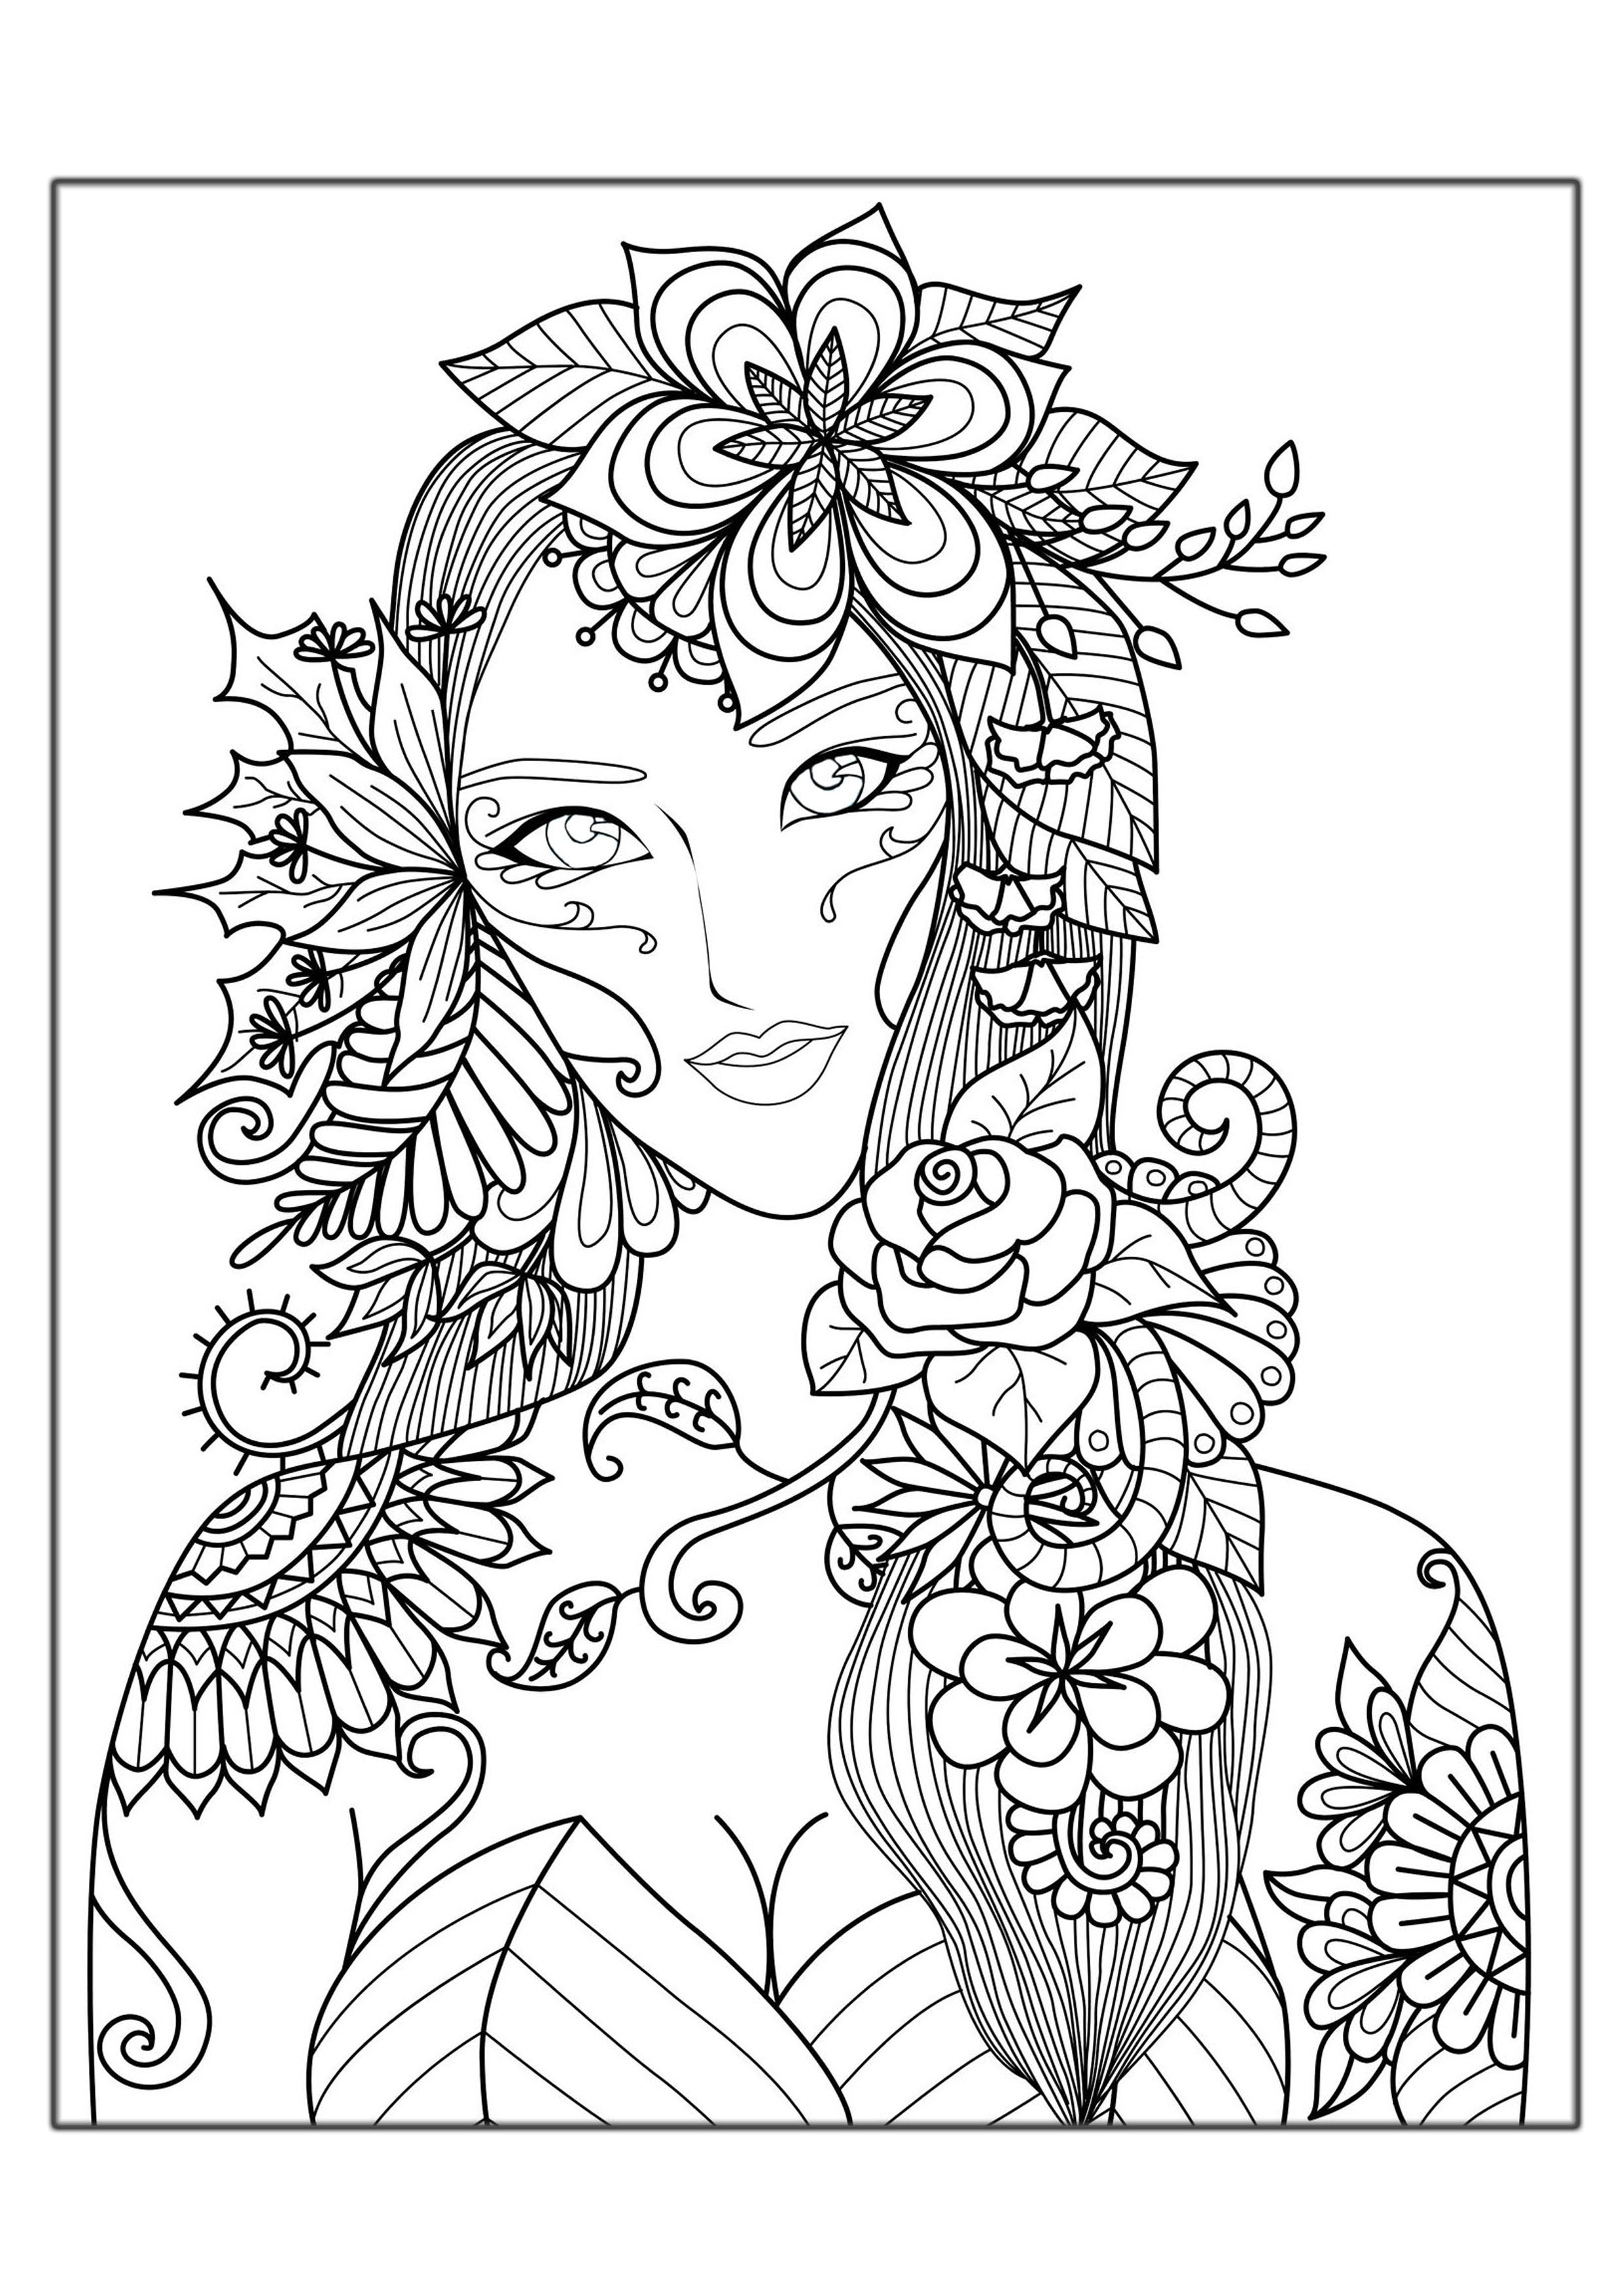 Hard Coloring Pages For Adults Best Coloring Pages For Kids Coloring For Adults